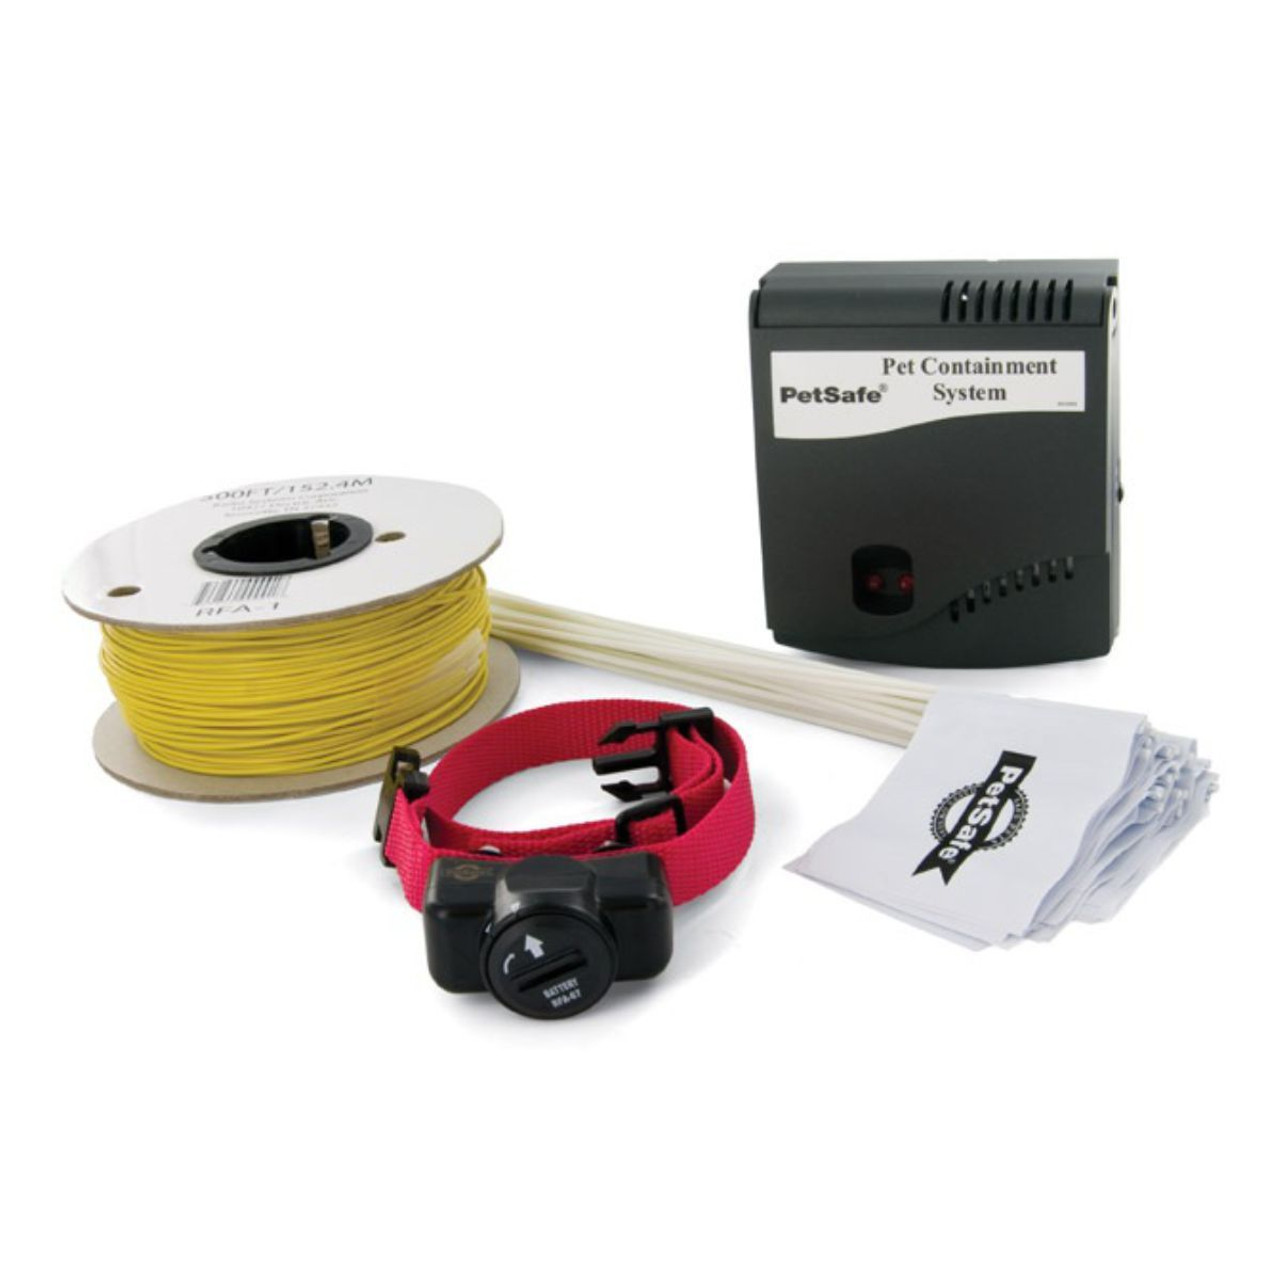 Pet Safe Wired dog fence, inc  100 mars cable, training flags, instructions, Base Unit